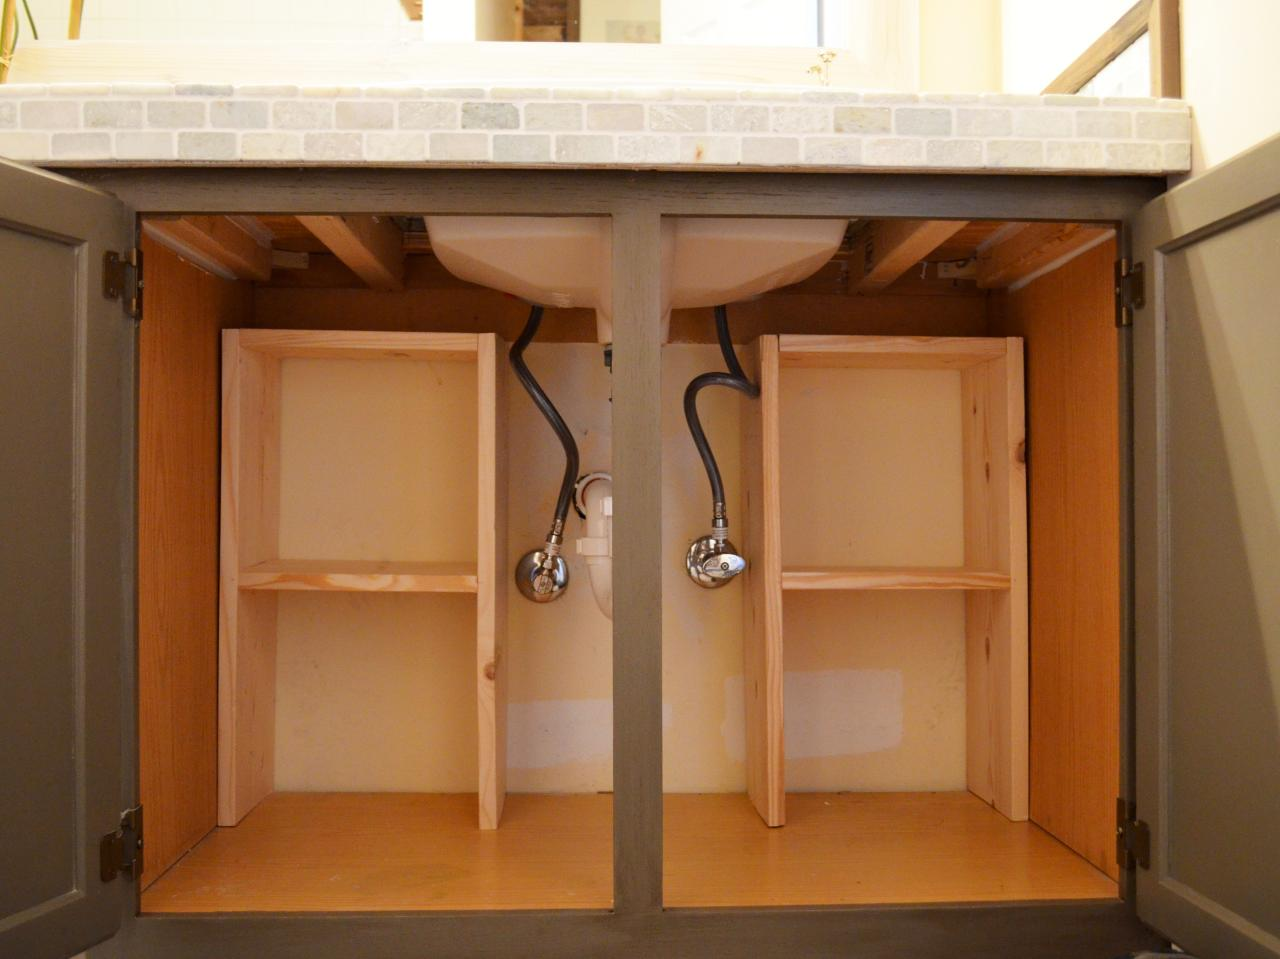 Model  Under Sink Storage Solution Our Savona Under Sink Bathroom Cabinet Is